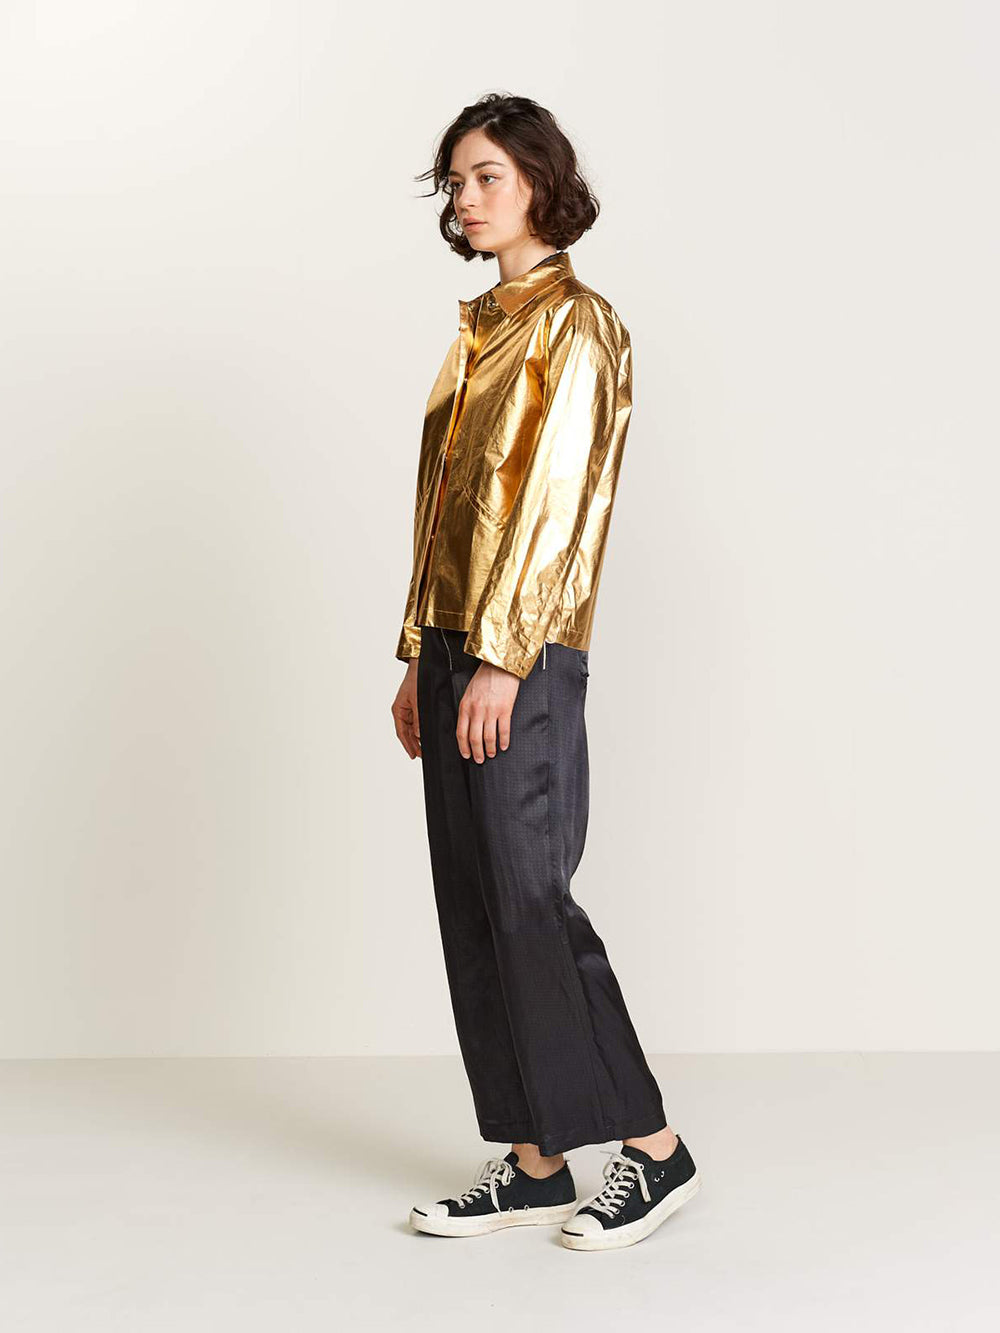 bellerose leeb jacket in gold